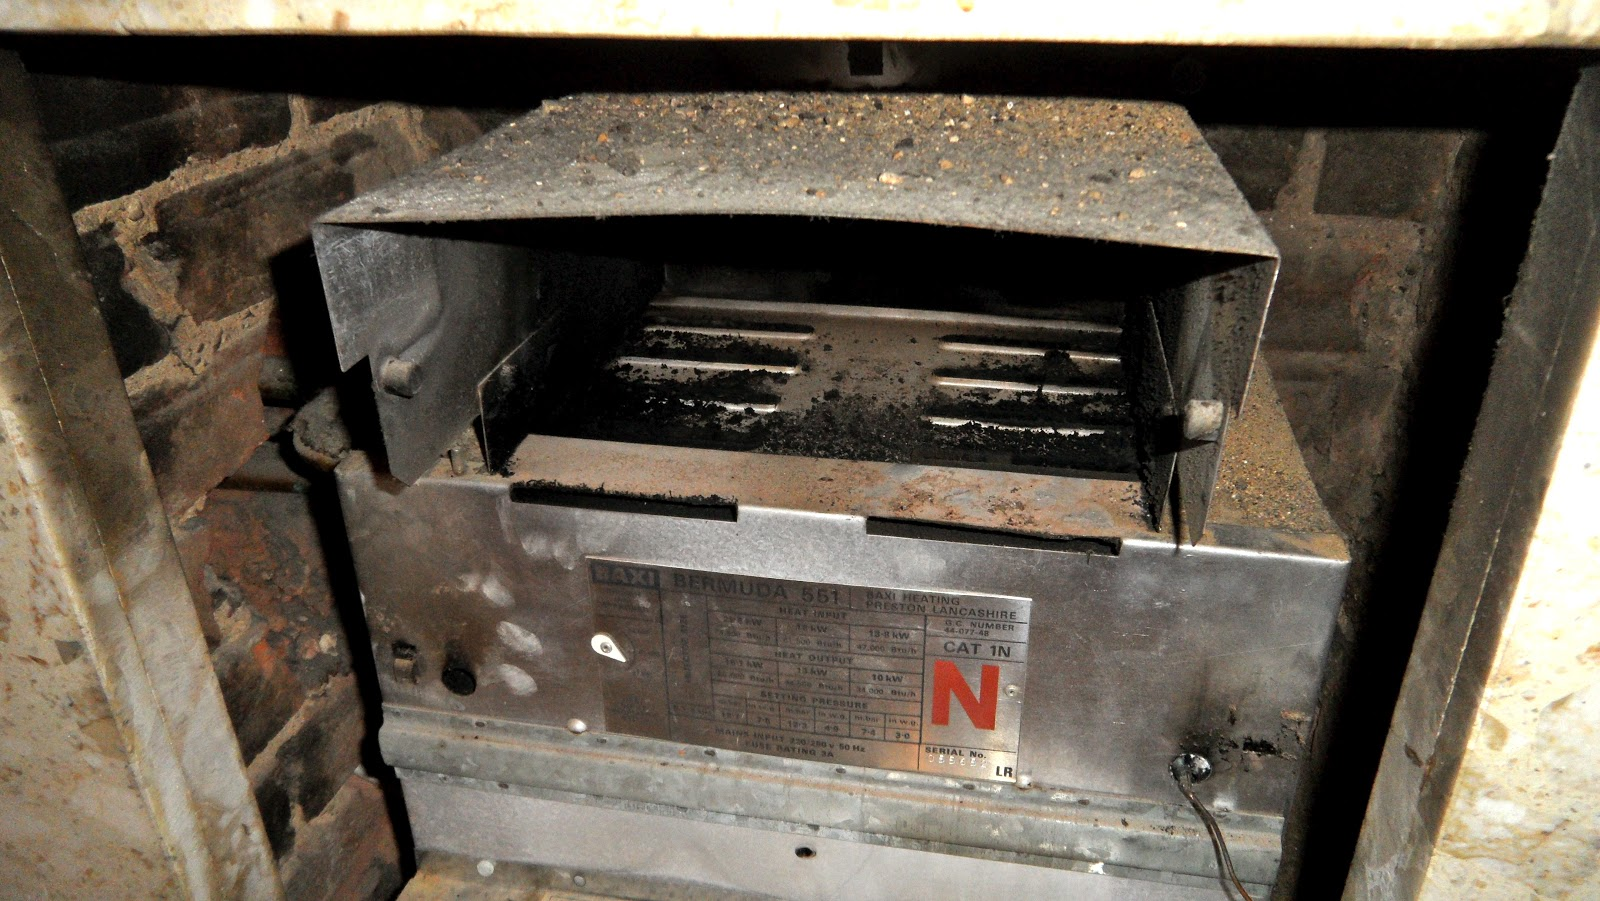 Getting Carbon Monoxide From My Infrared Natural Gas Heater